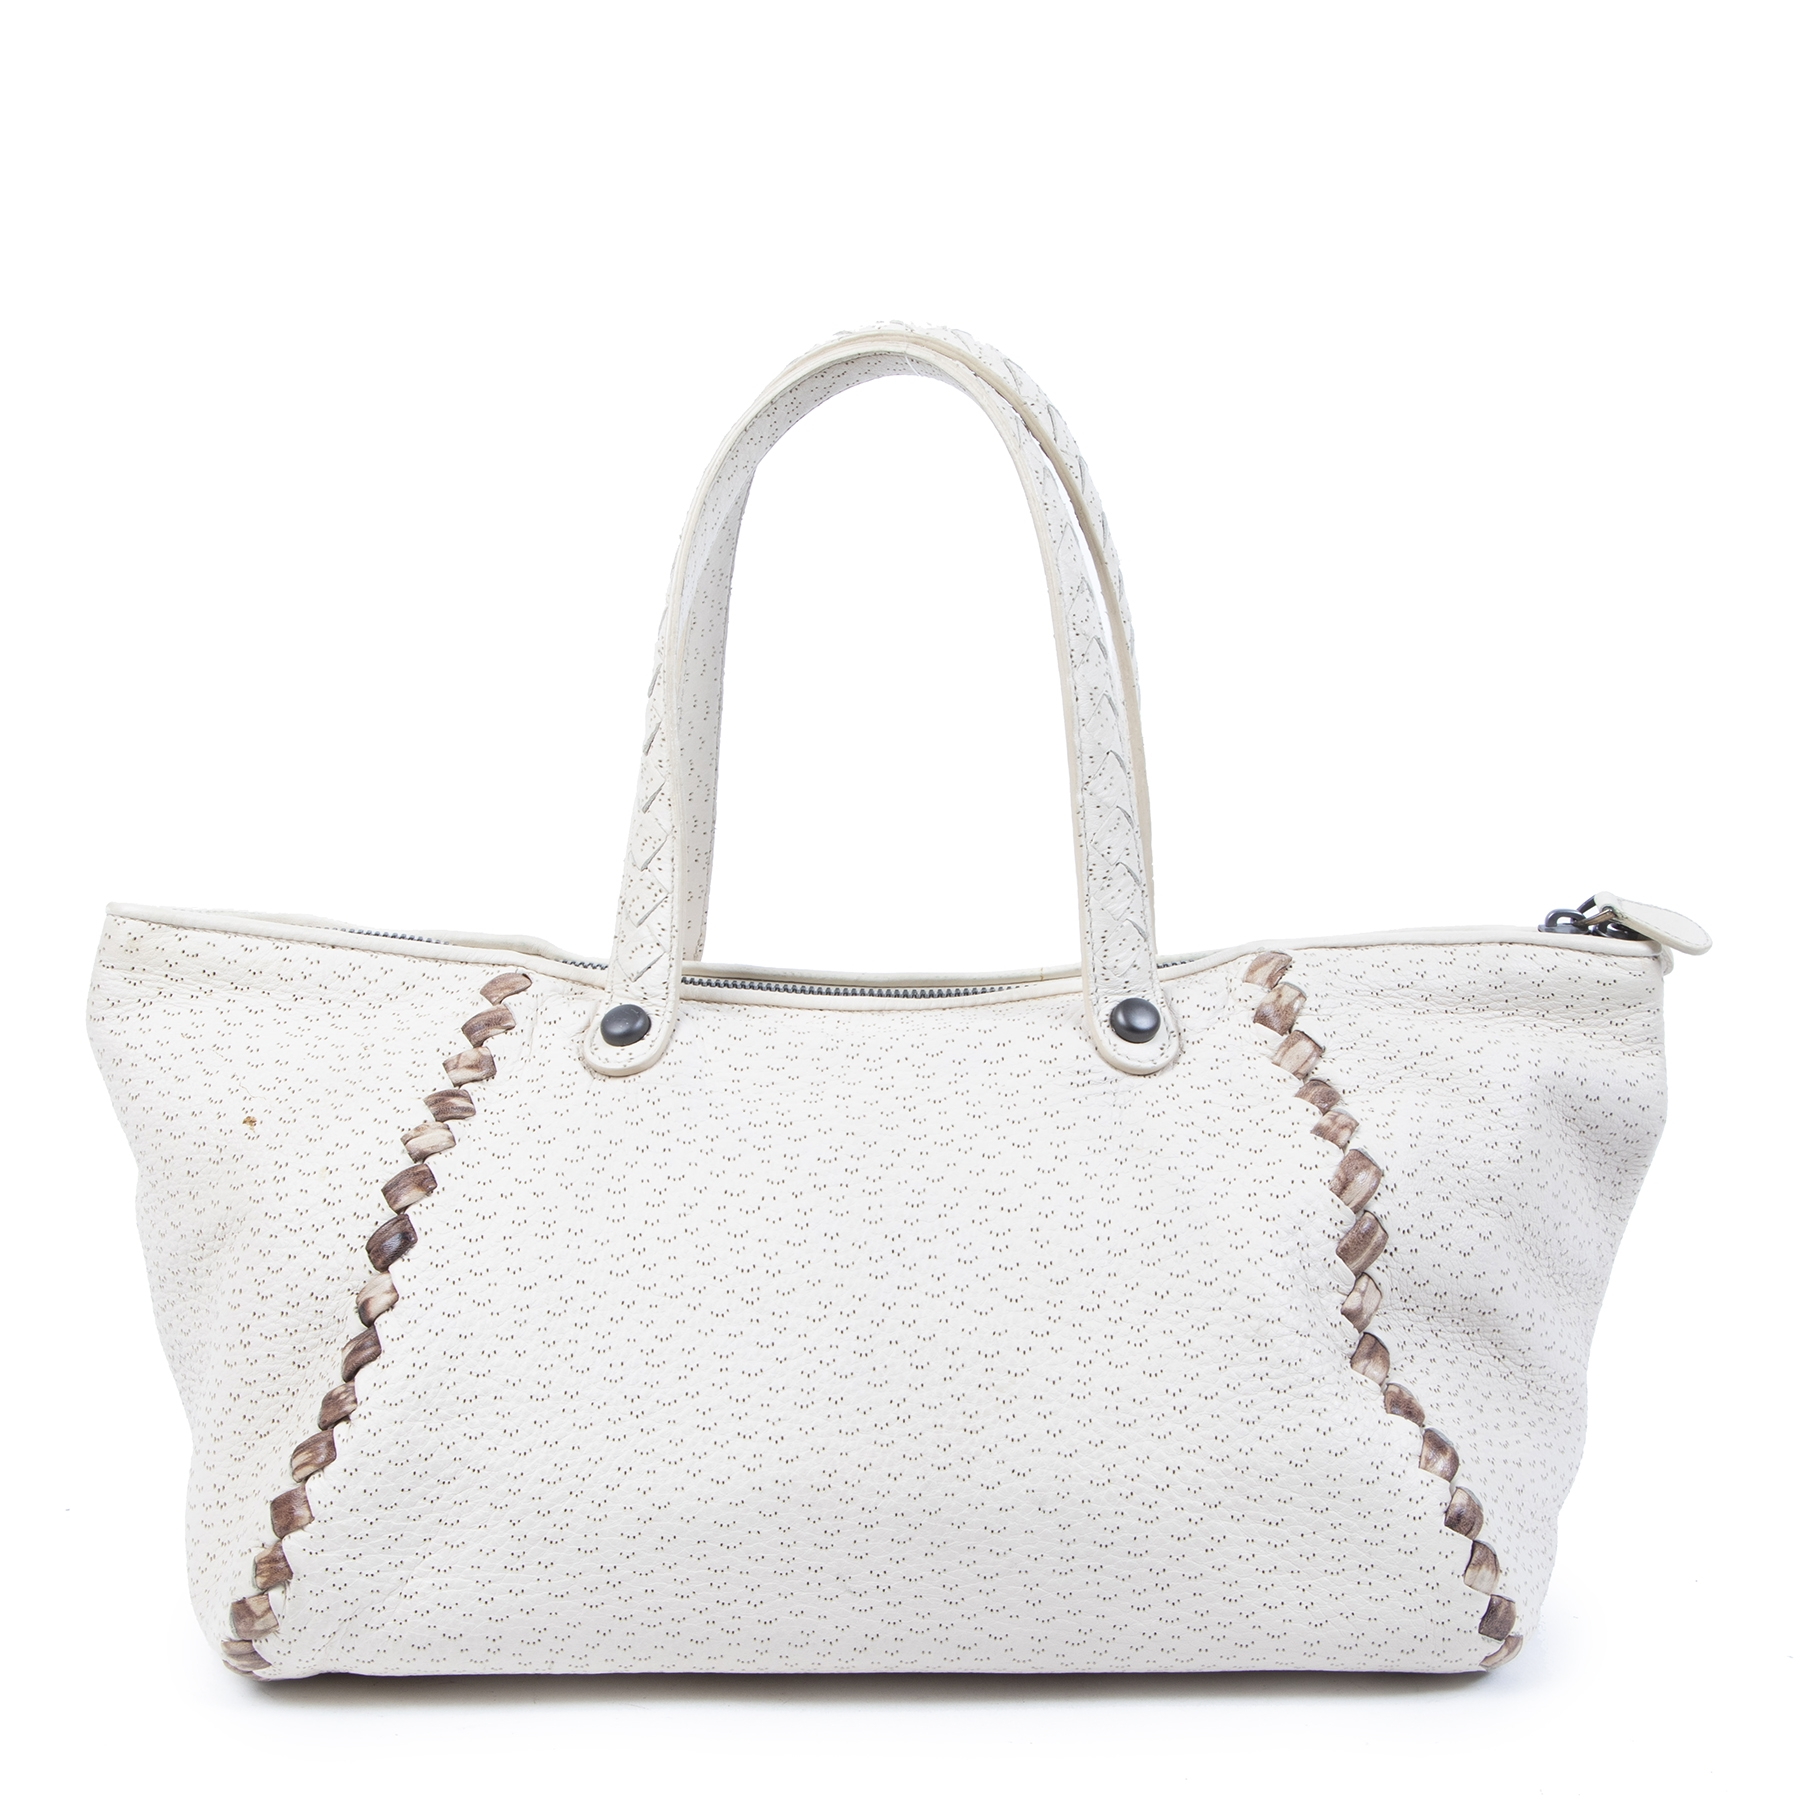 Authentic second-hand vintage Bottega Veneta Cream Cervo Deerskin Perforated Zip Tote buy online webshop LabelLOV